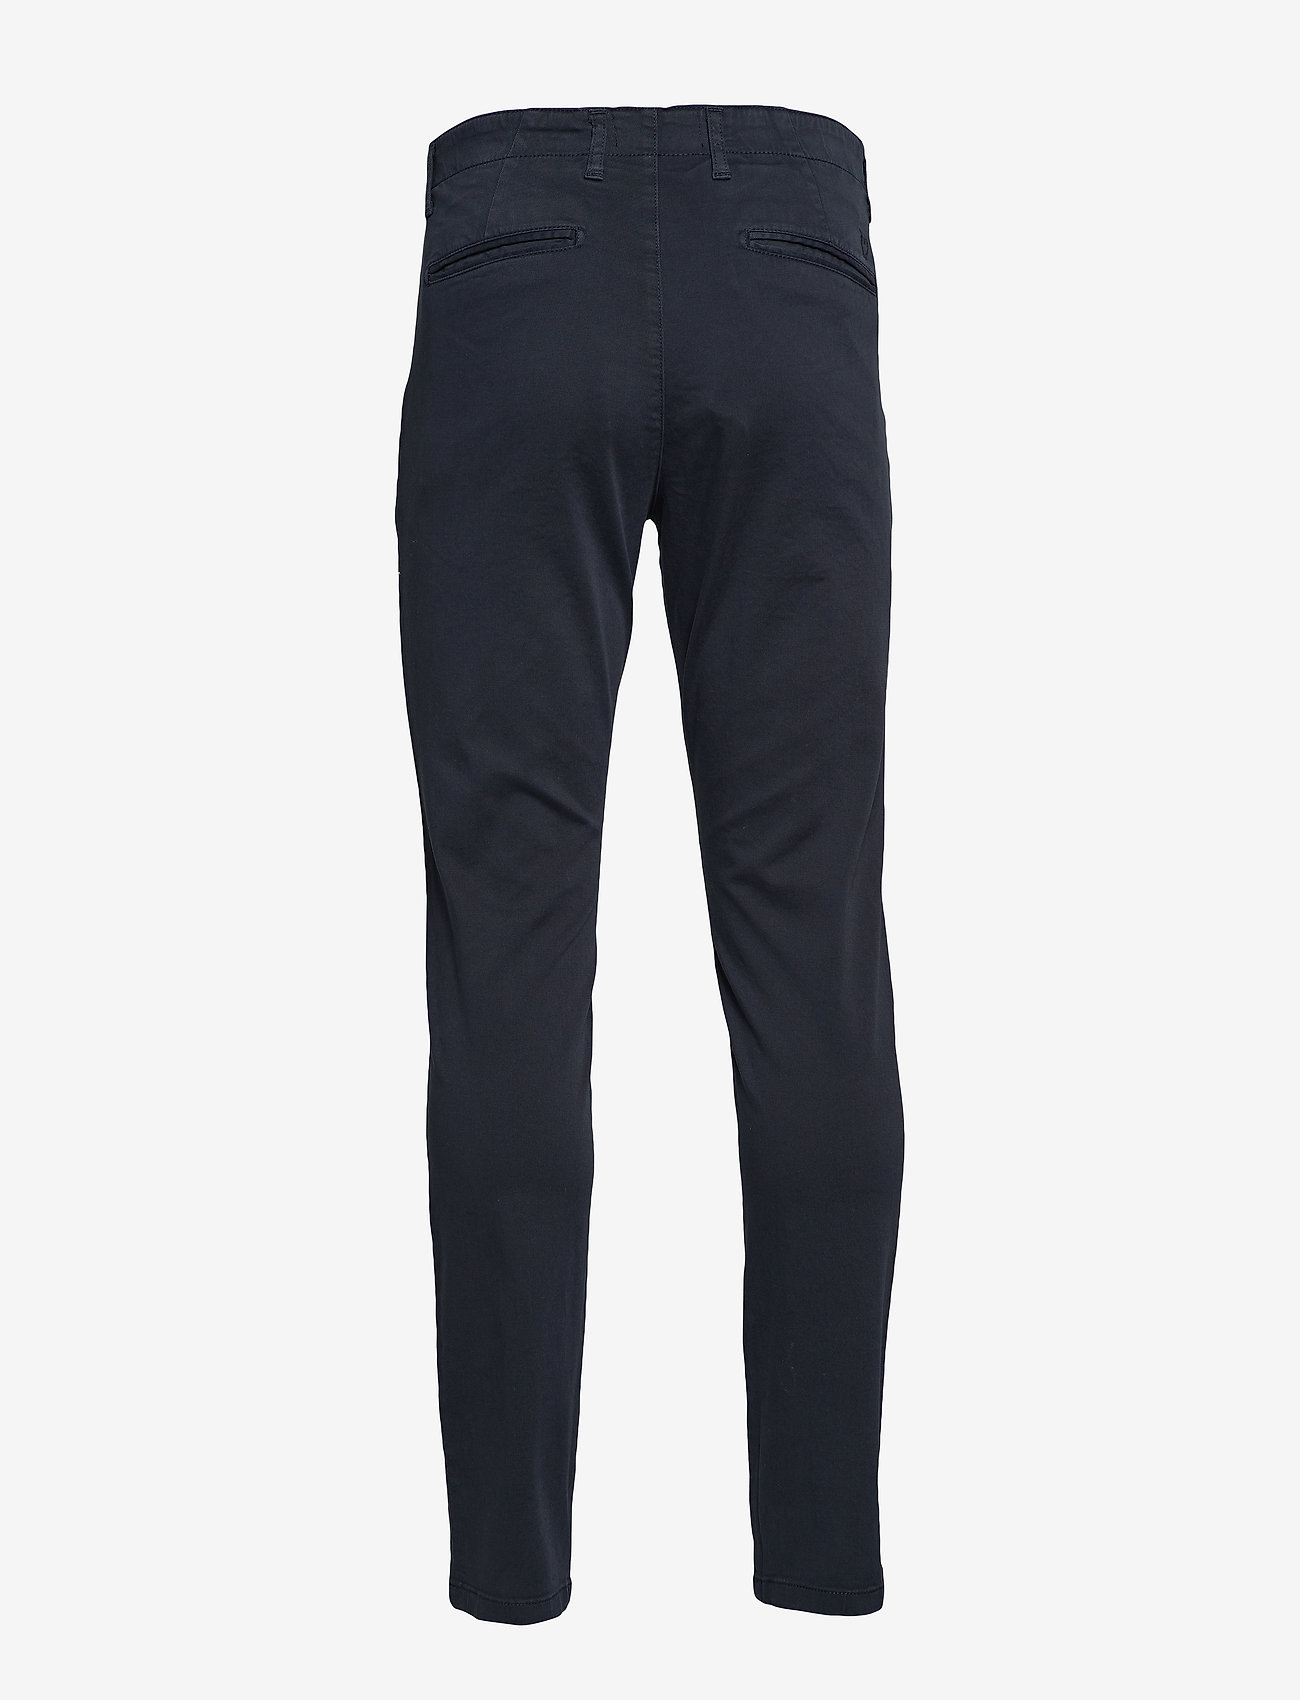 Knowledge Cotton Appareljoe Slim Chino Pant - Gots/vegan Hosen